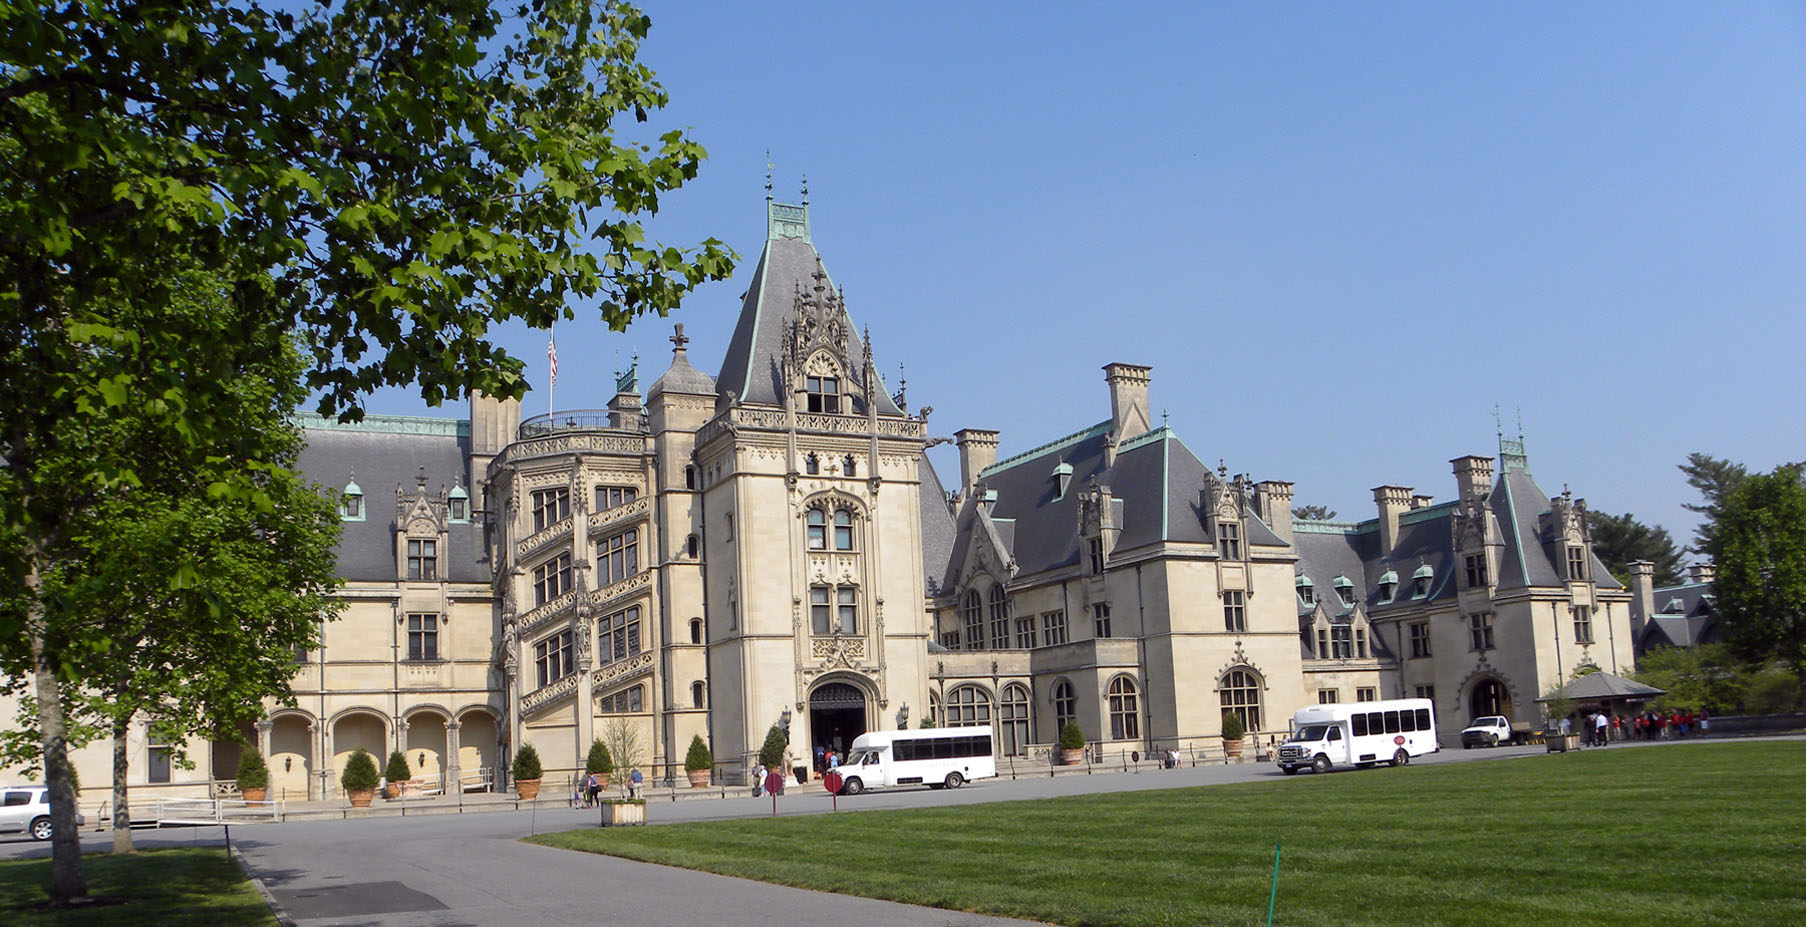 The Biltmore House in Ashville